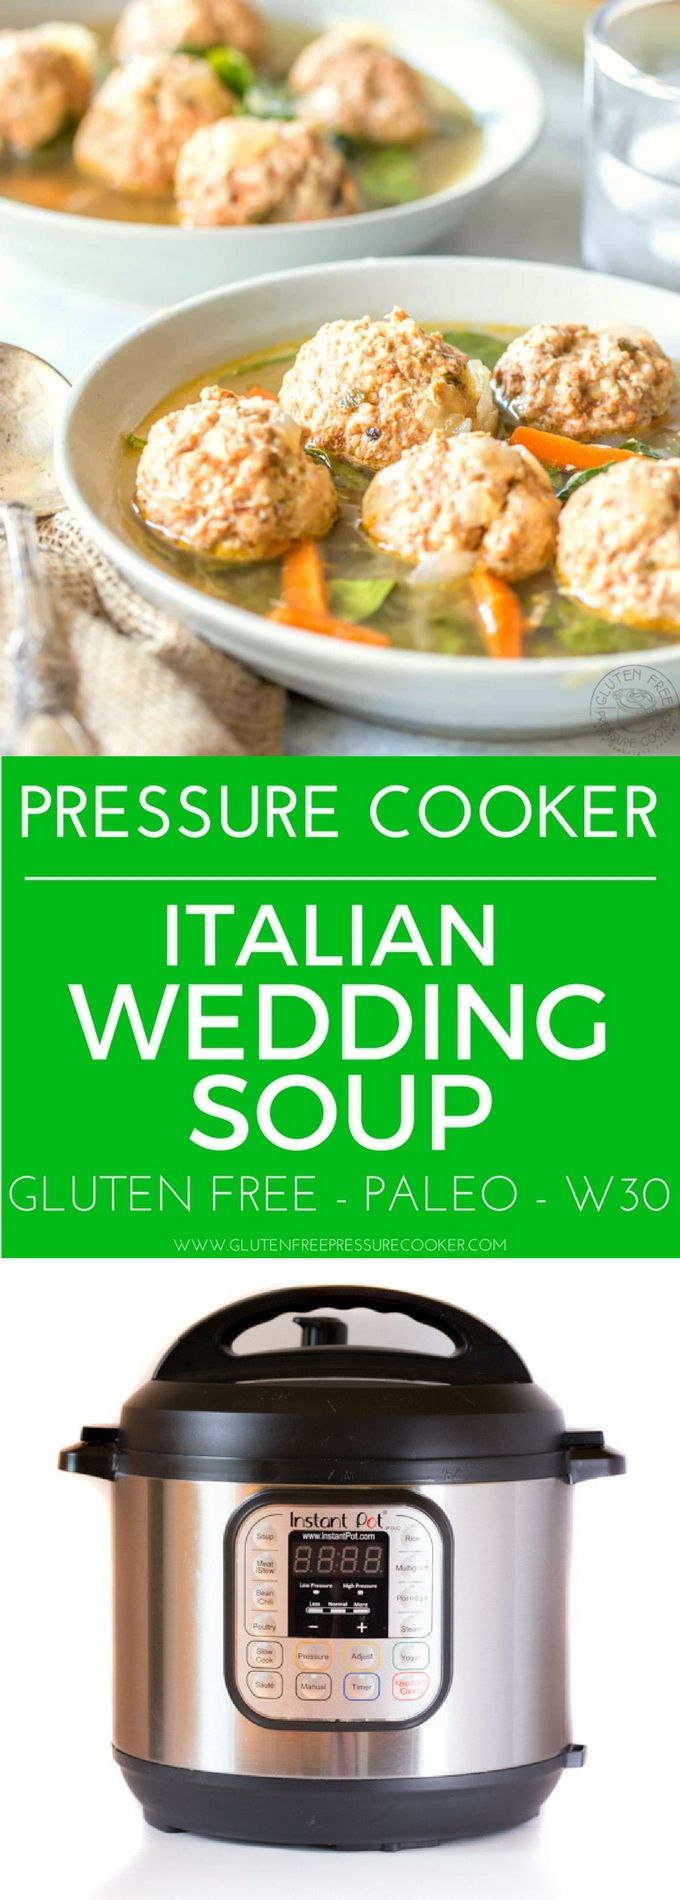 Pressure Cooker Italian Wedding Soup, this recipe is